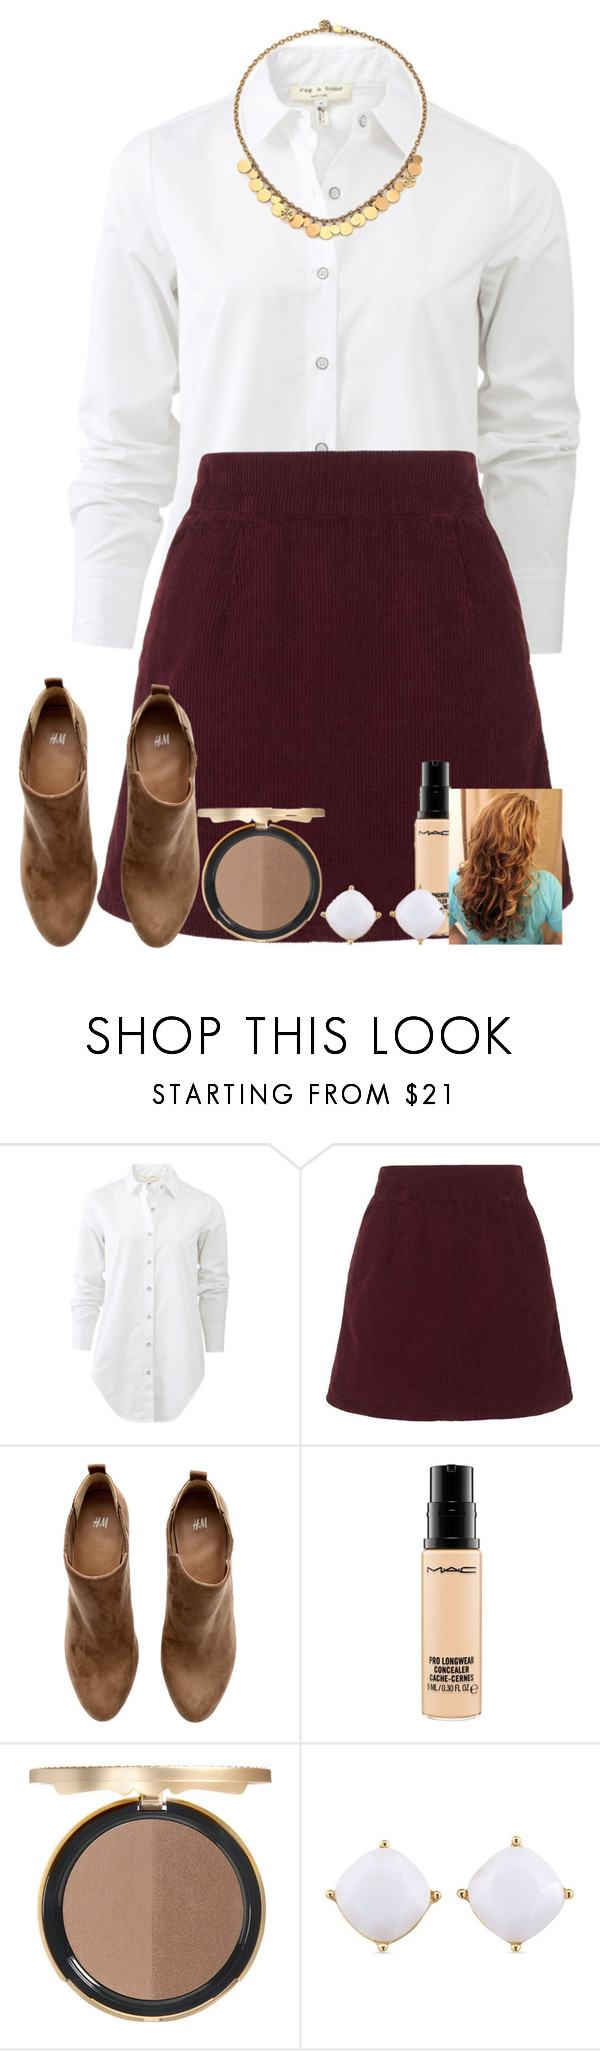 """""""Gangsters don't cry """" by fashionpassion2002 ❤ liked on Polyvore featuring rag & bone, Topshop, H&M, MAC Cosmetics, Too Faced Cosmetics, Carolee, Tory Burch, women's clothing, women's fashion and women"""